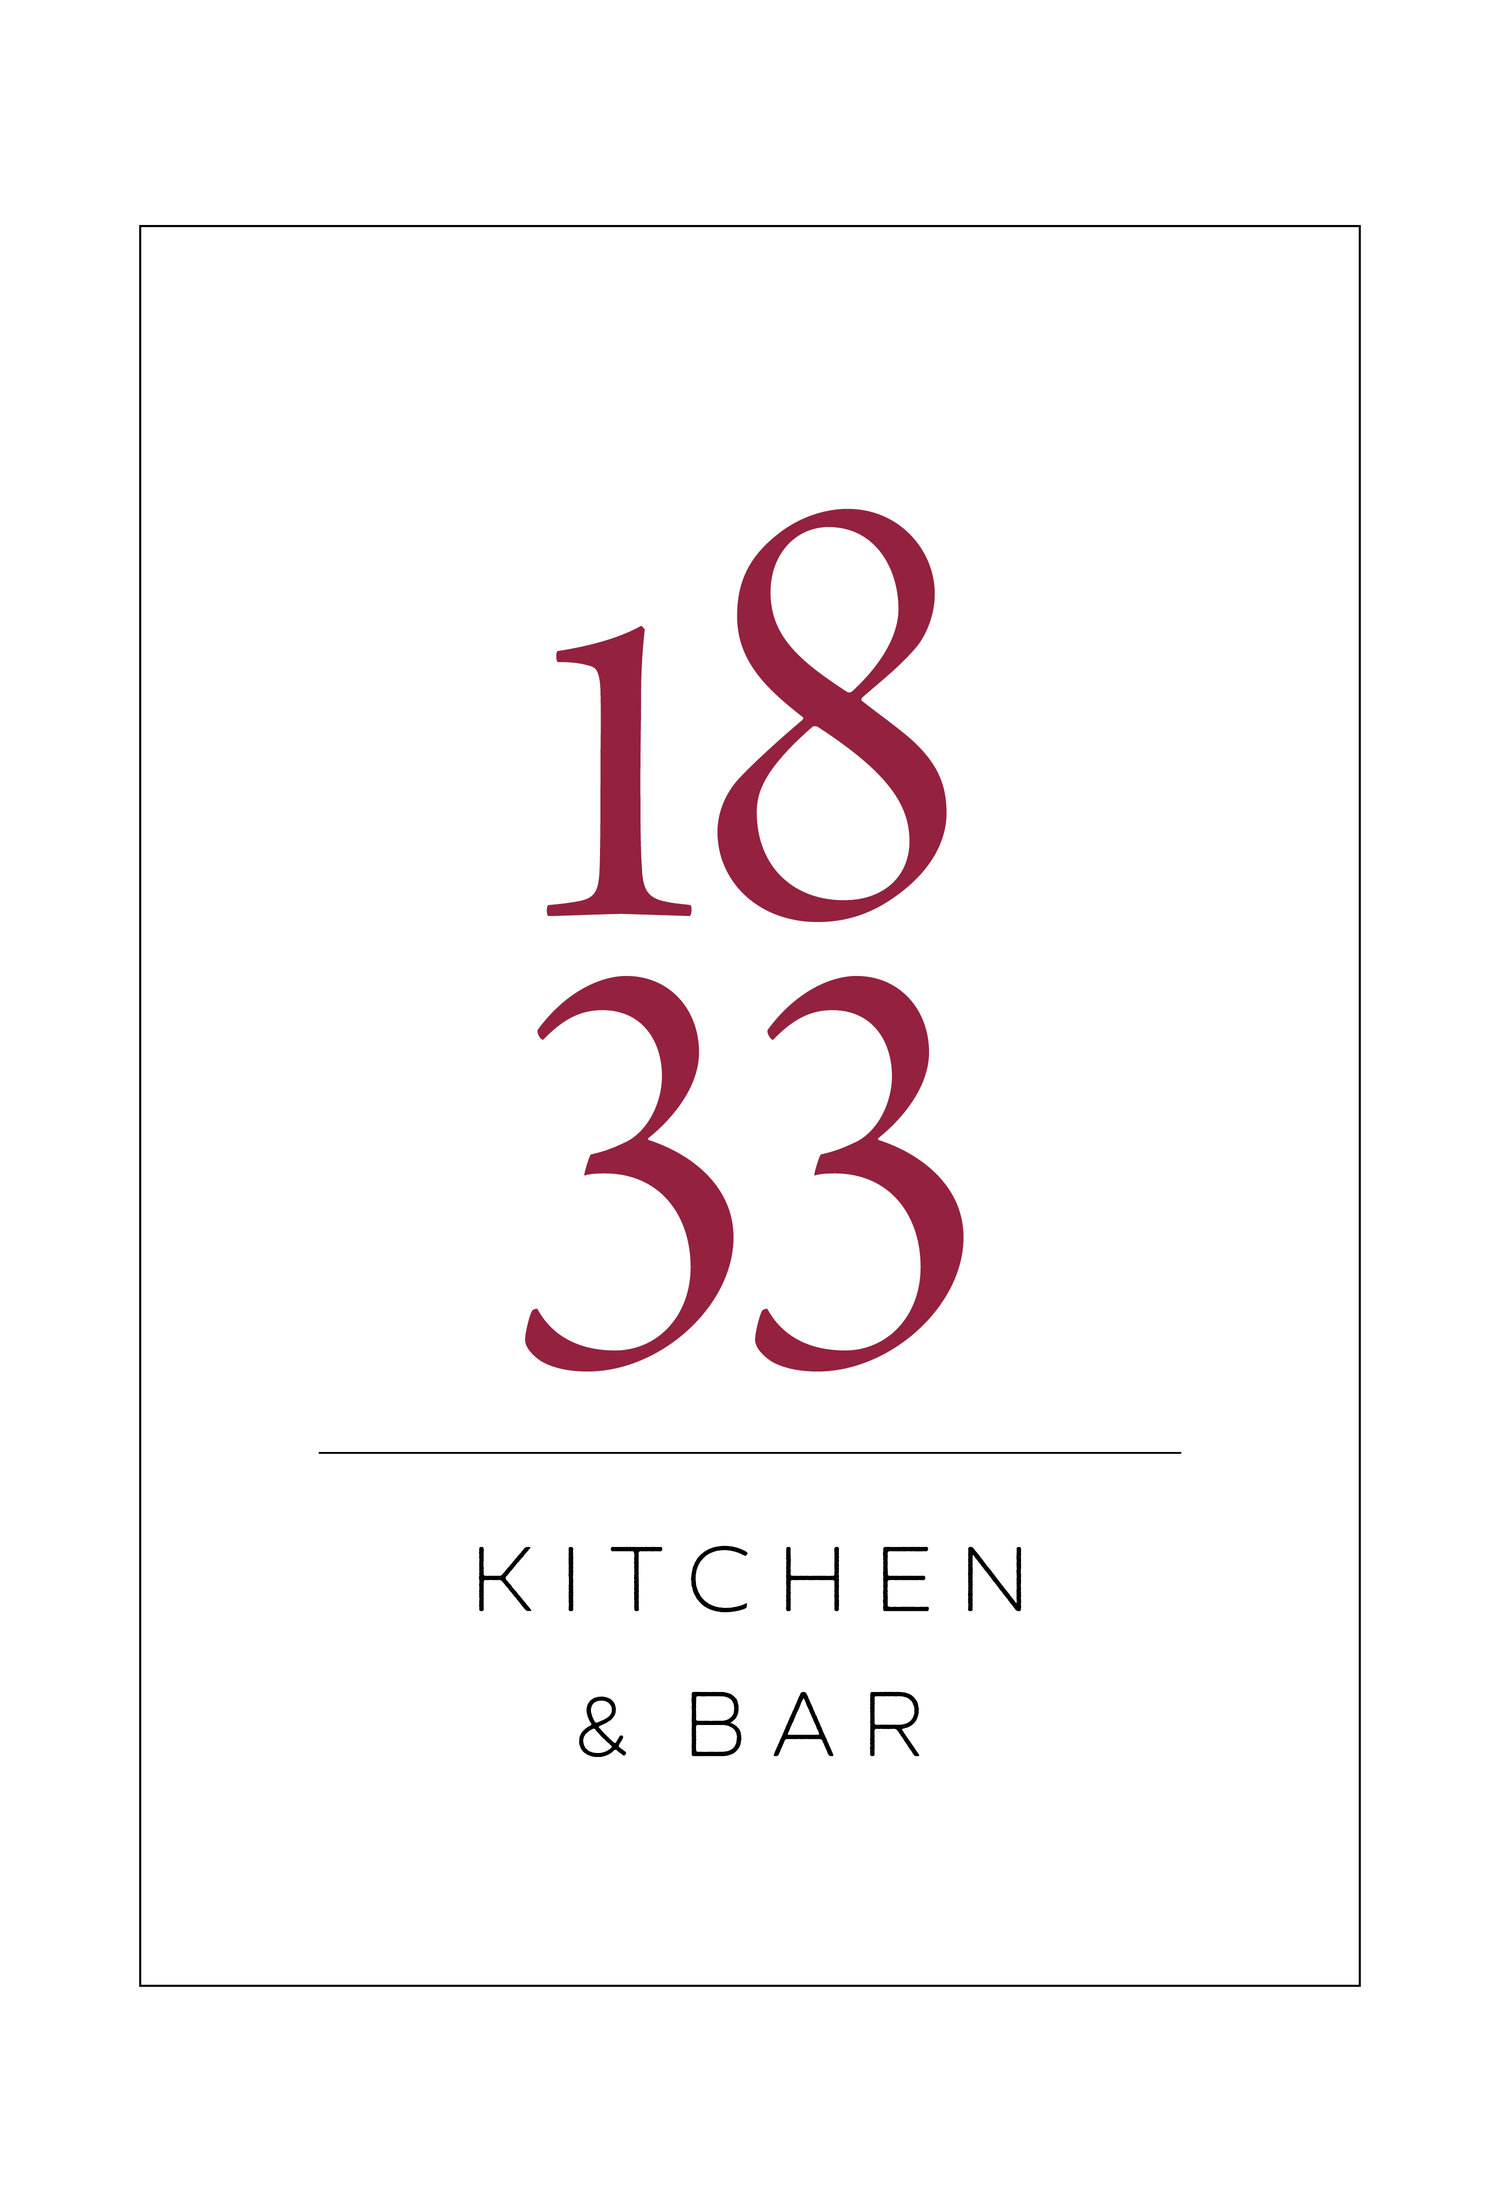 1833 Kitchen & Bar